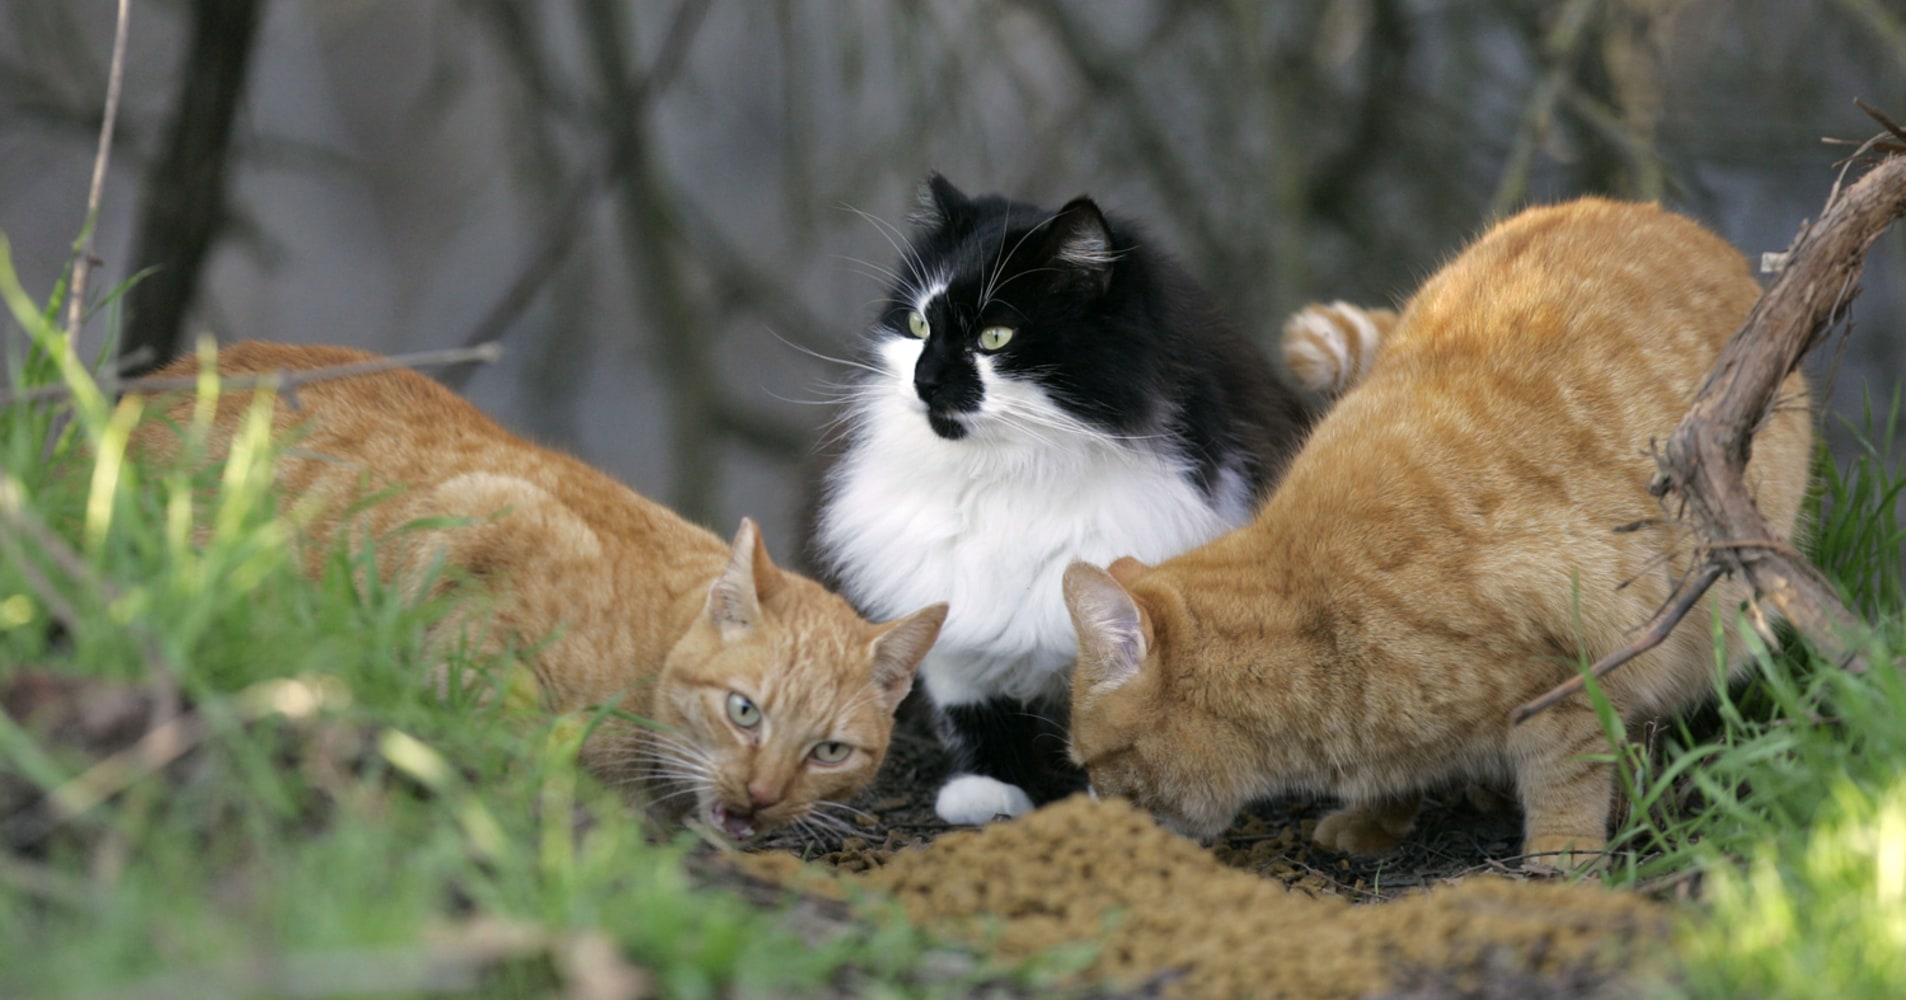 cat parasites may pose public health hazard study suggests